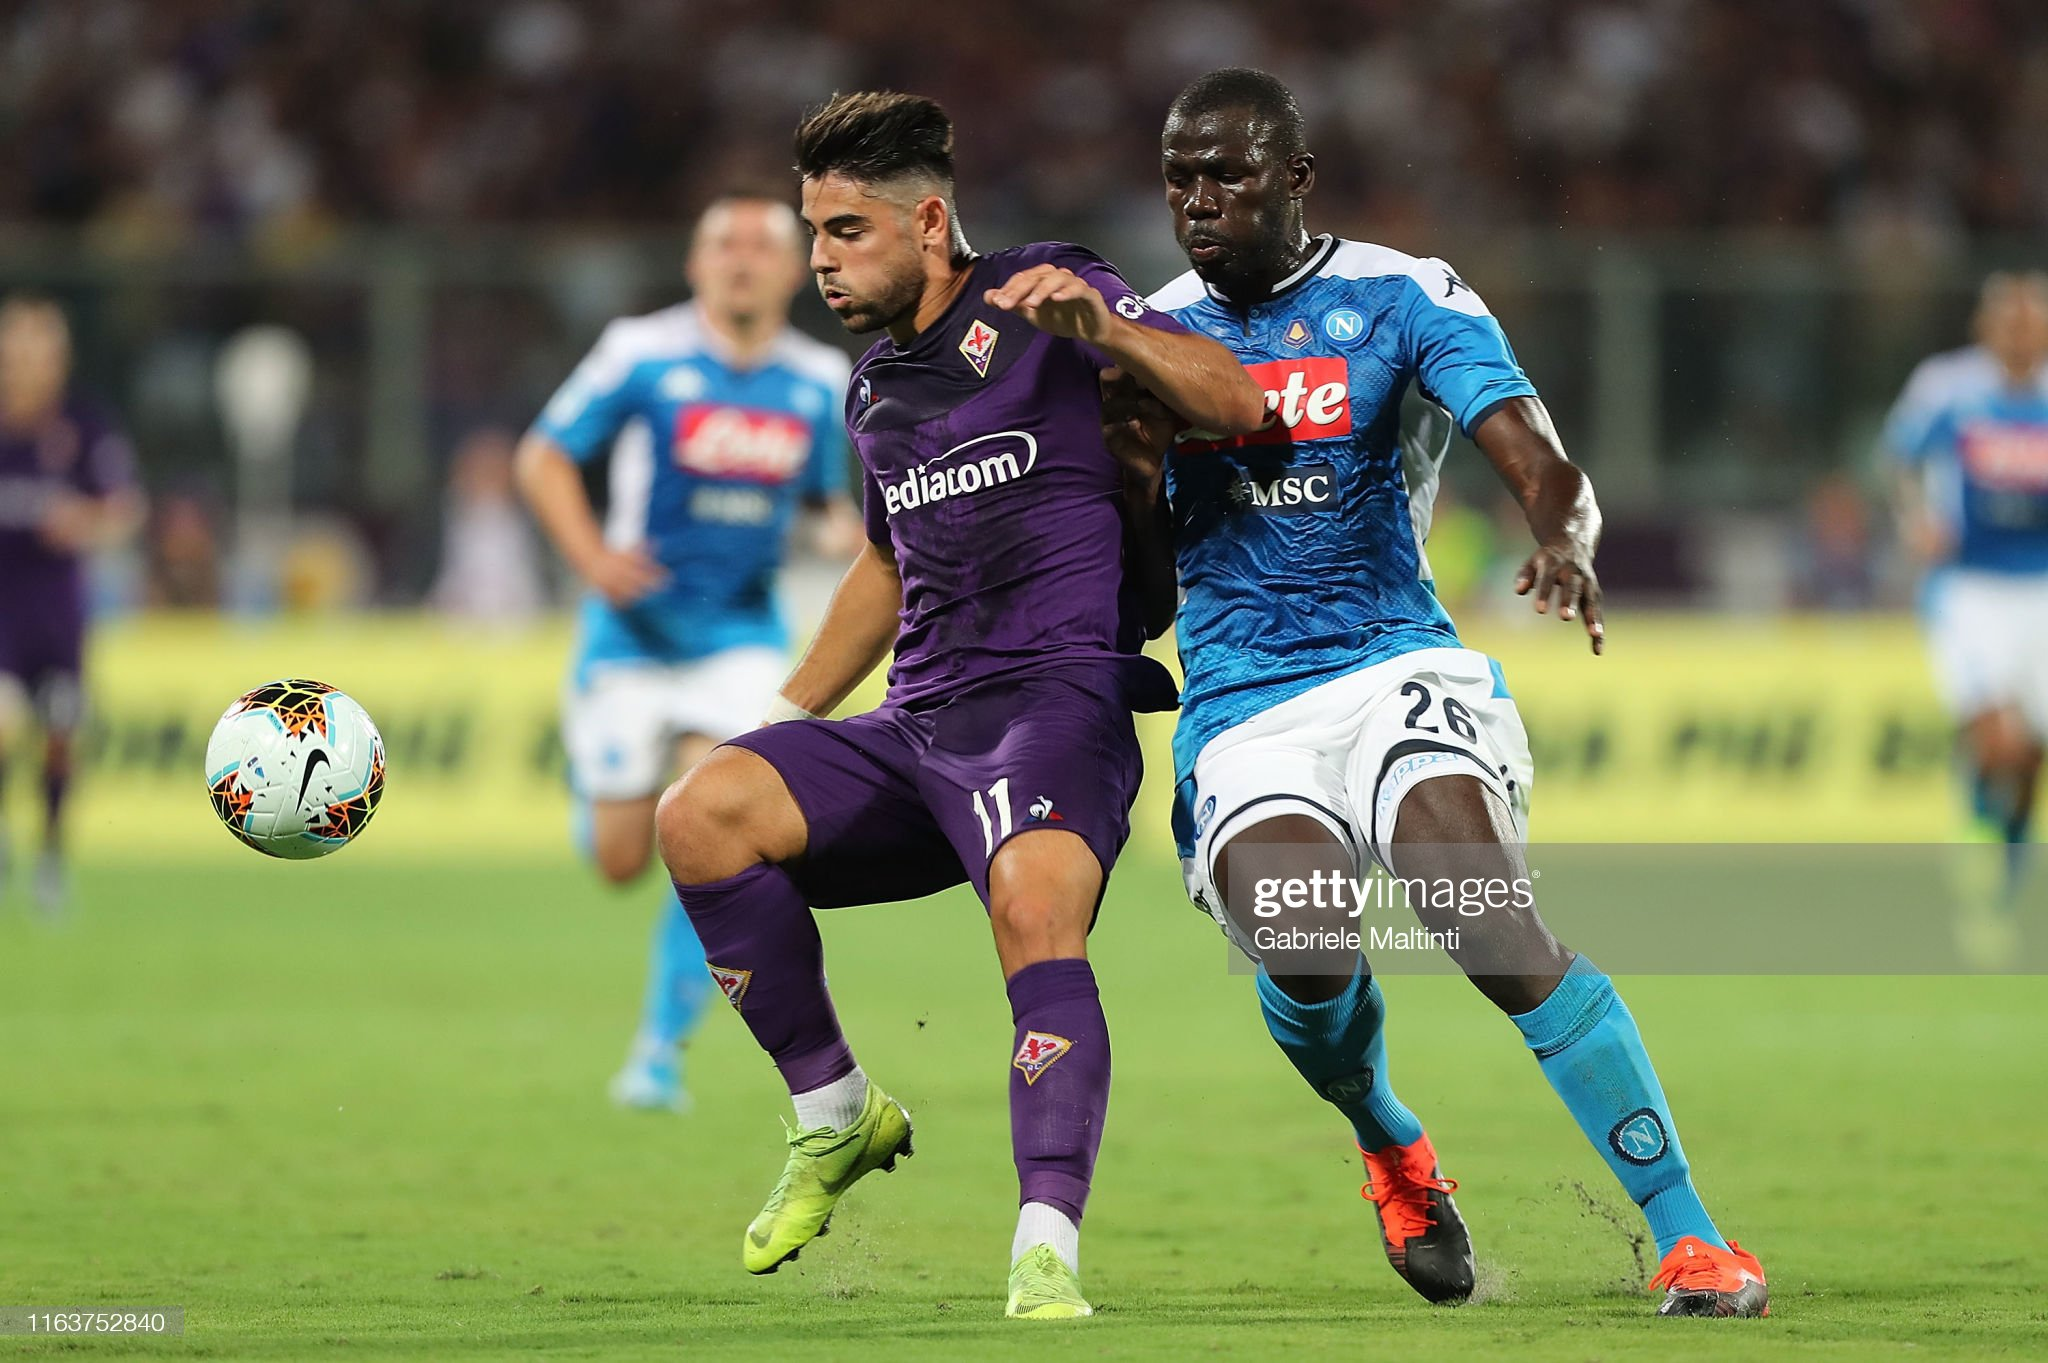 Napoli v Fiorentina preview, prediction and odds